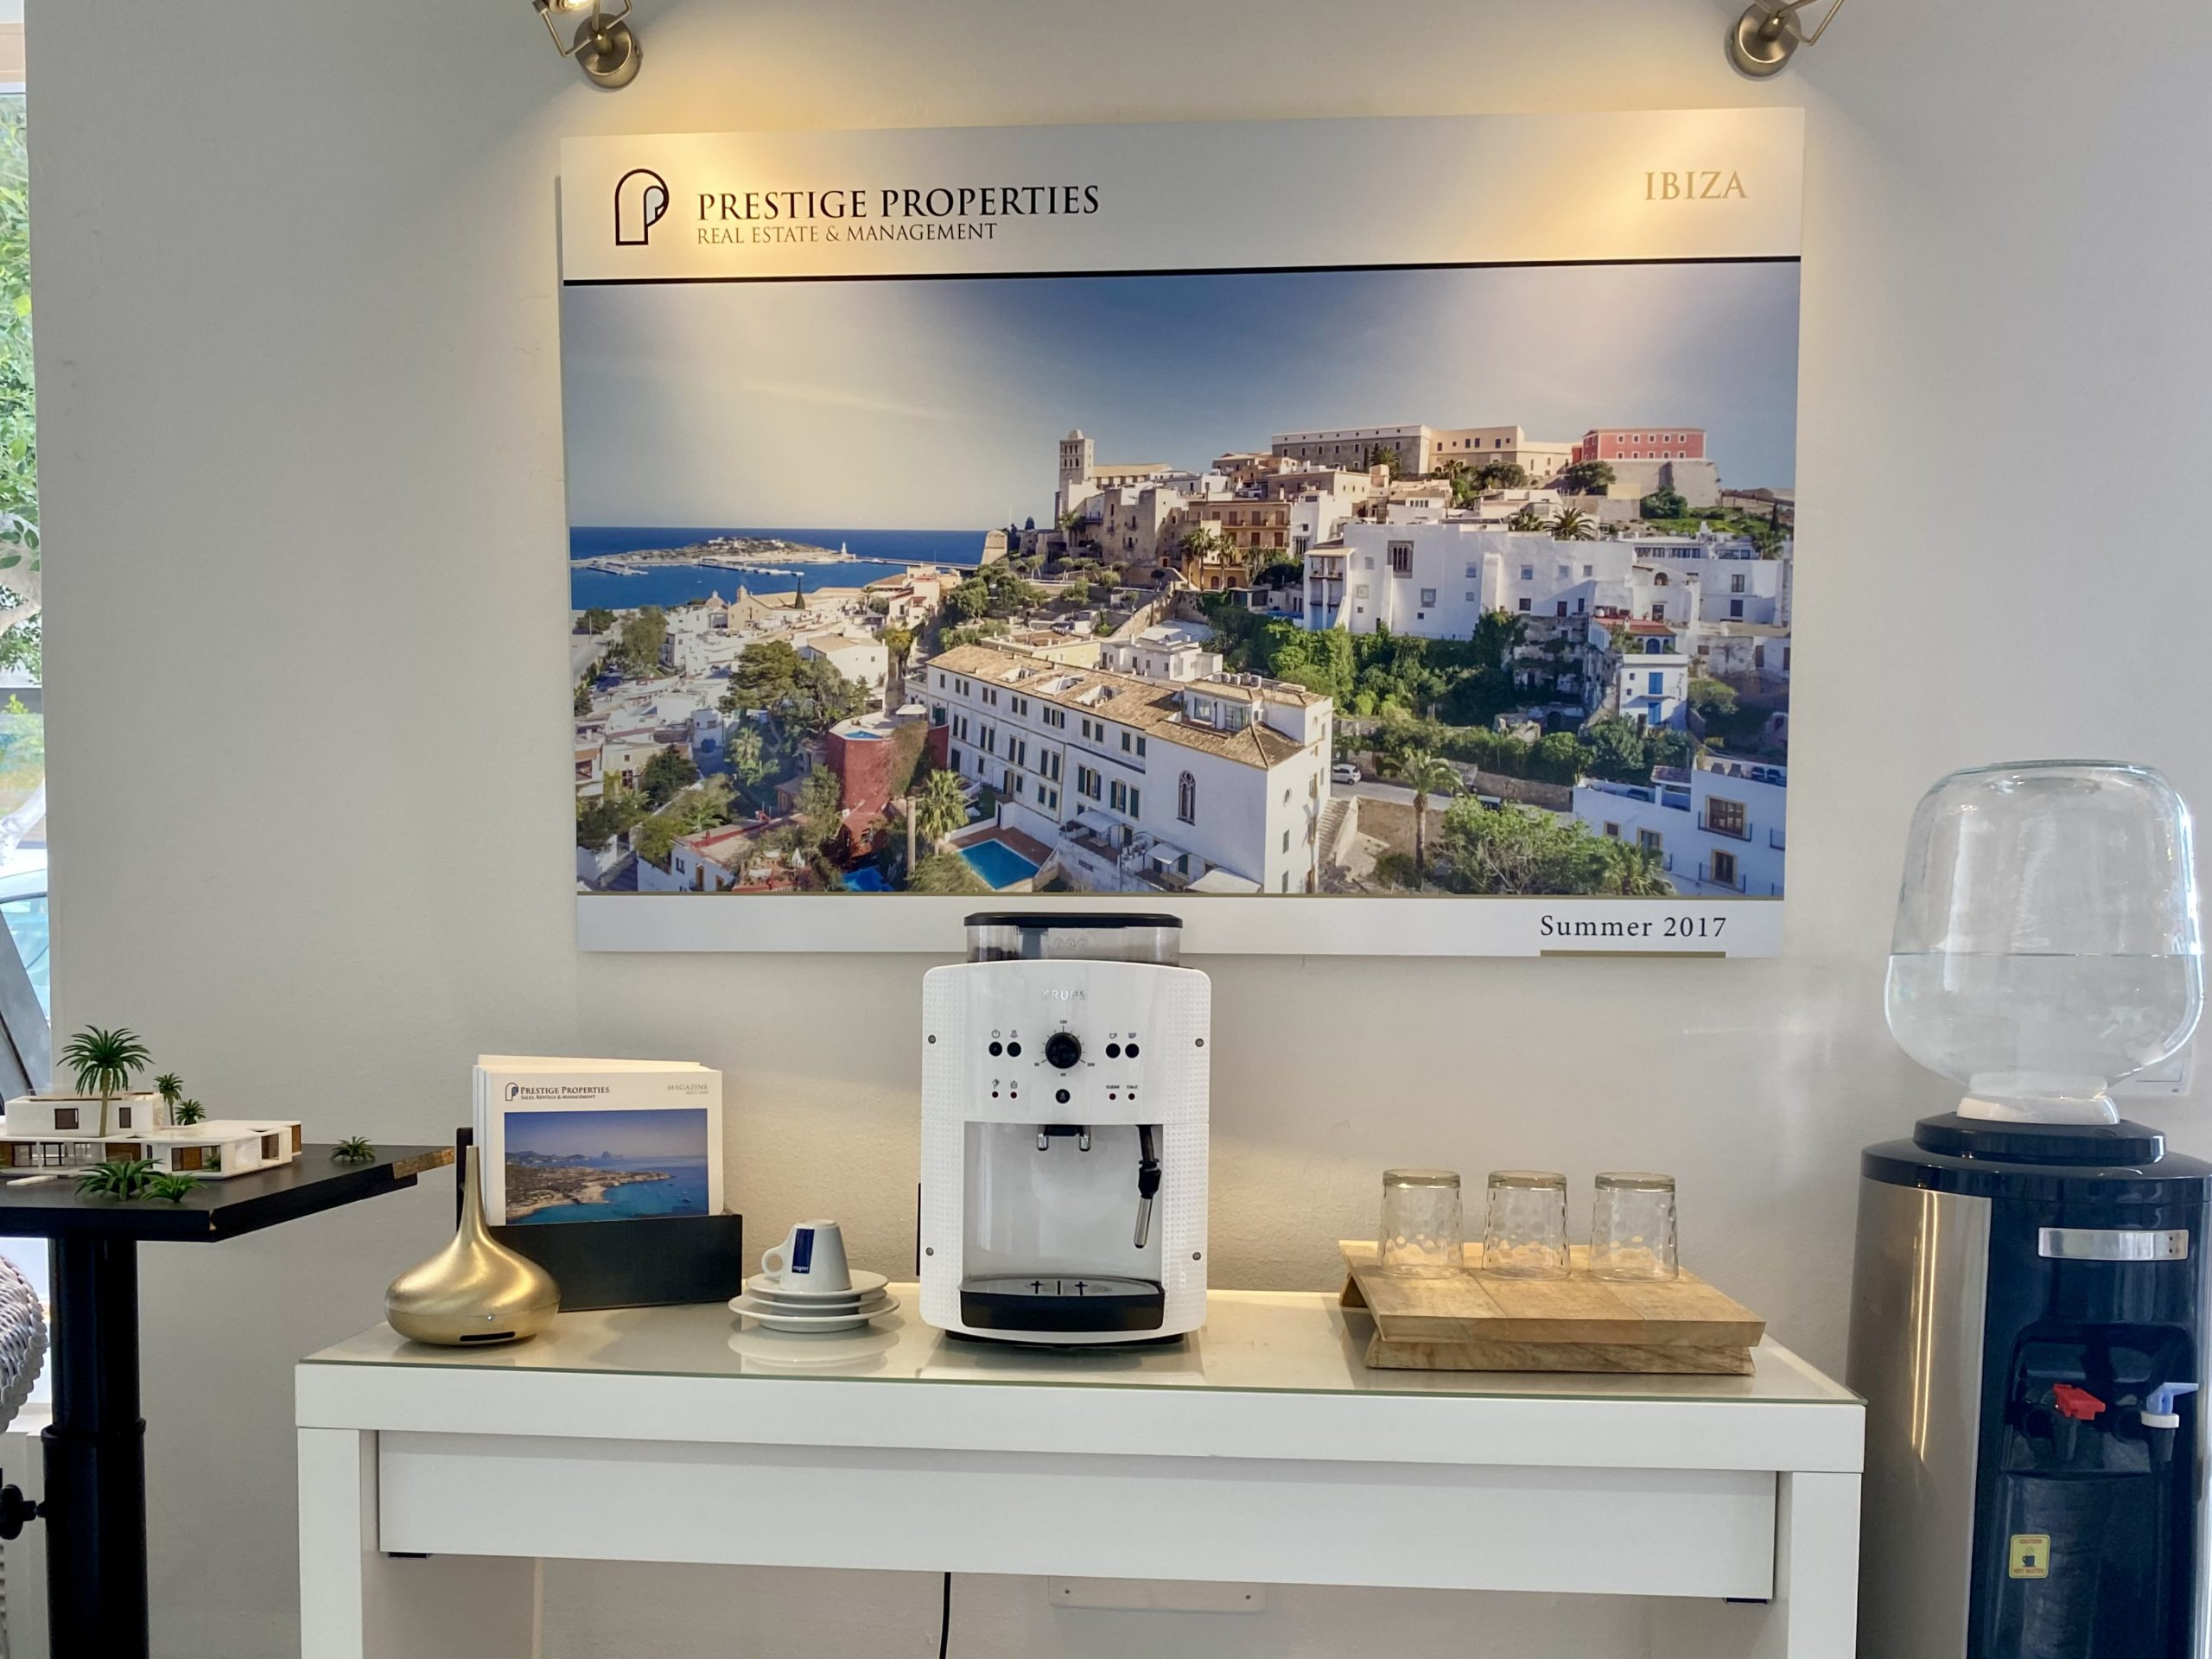 Prestige Properties Ibiza - Recycling and Upcycling - Plastic Reduction & Recycling